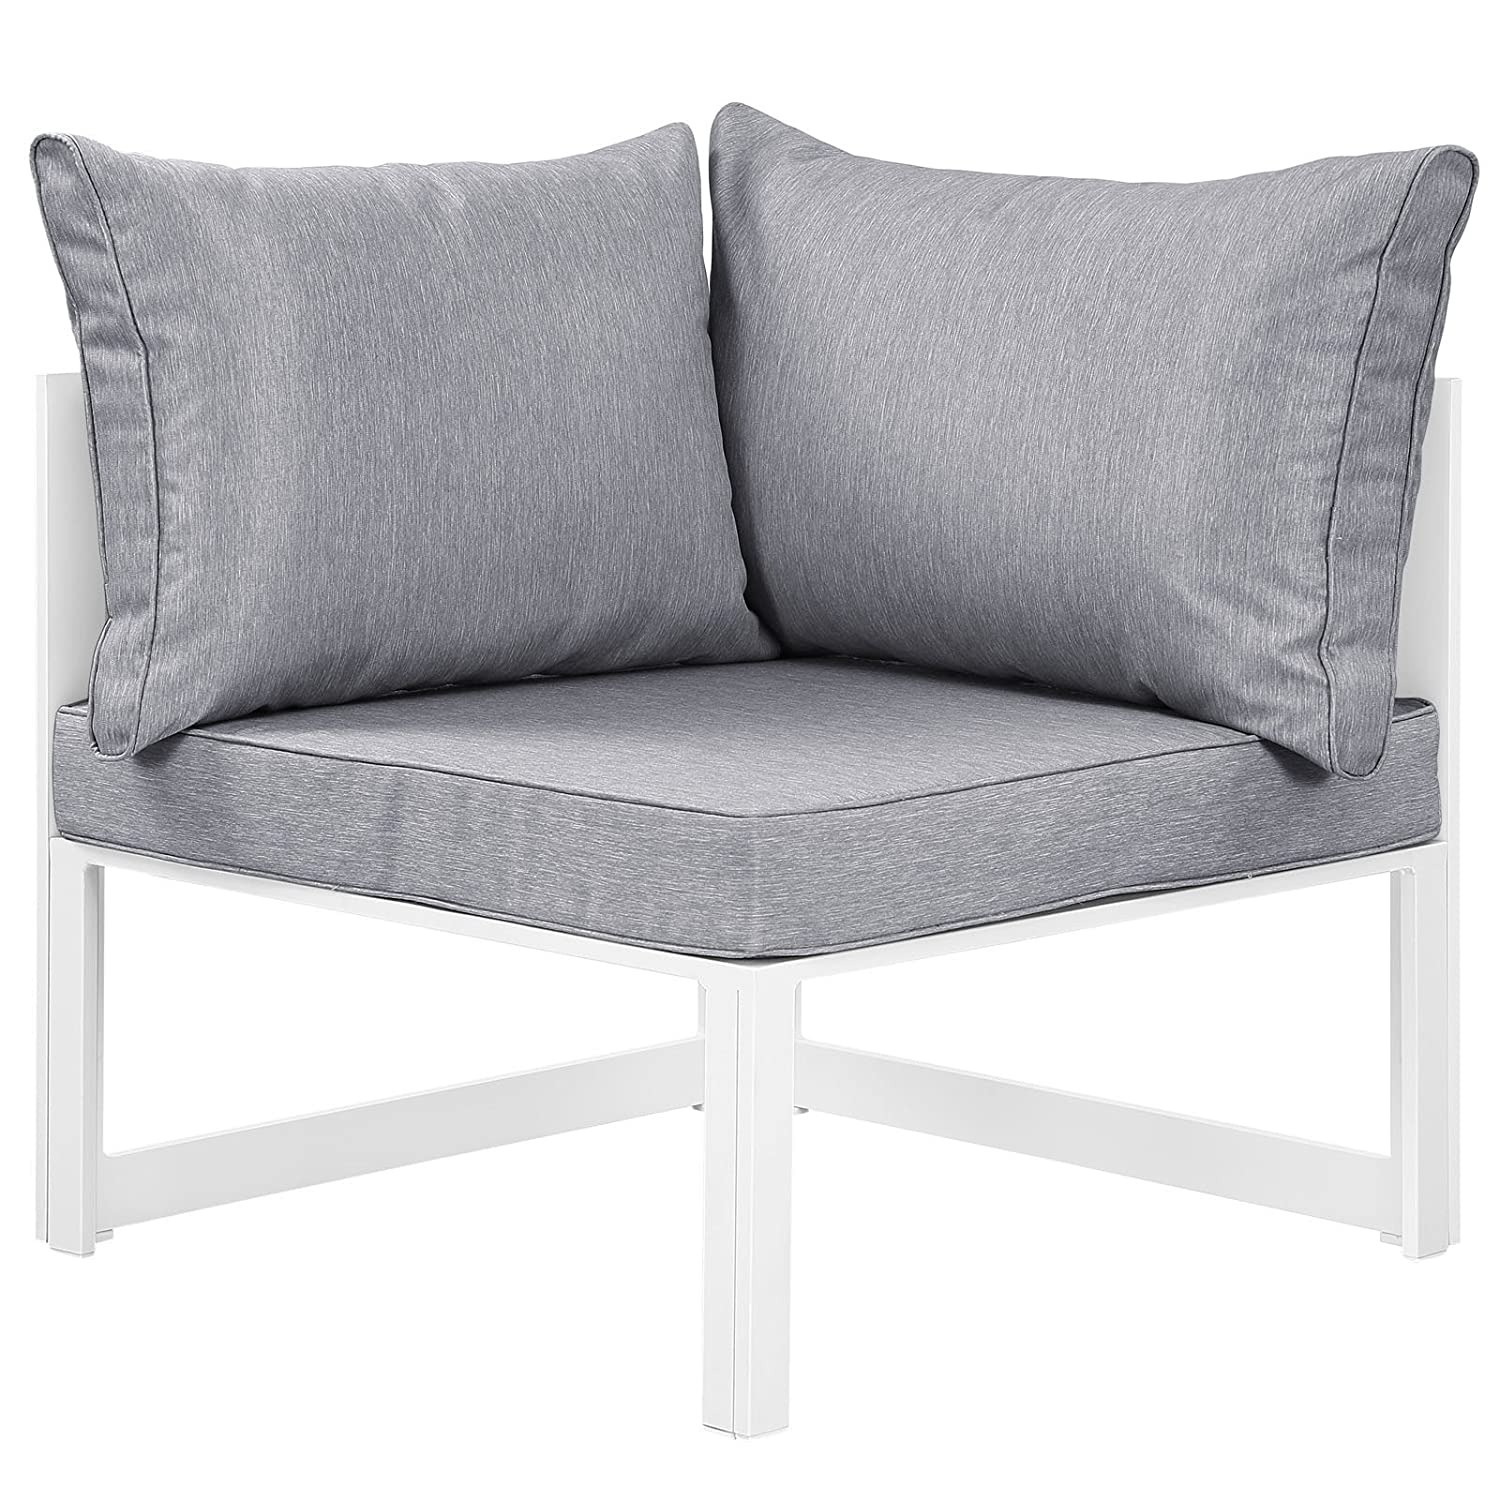 7-Piece Outdoor Sectional In Gray Fabric Cushion - image-1